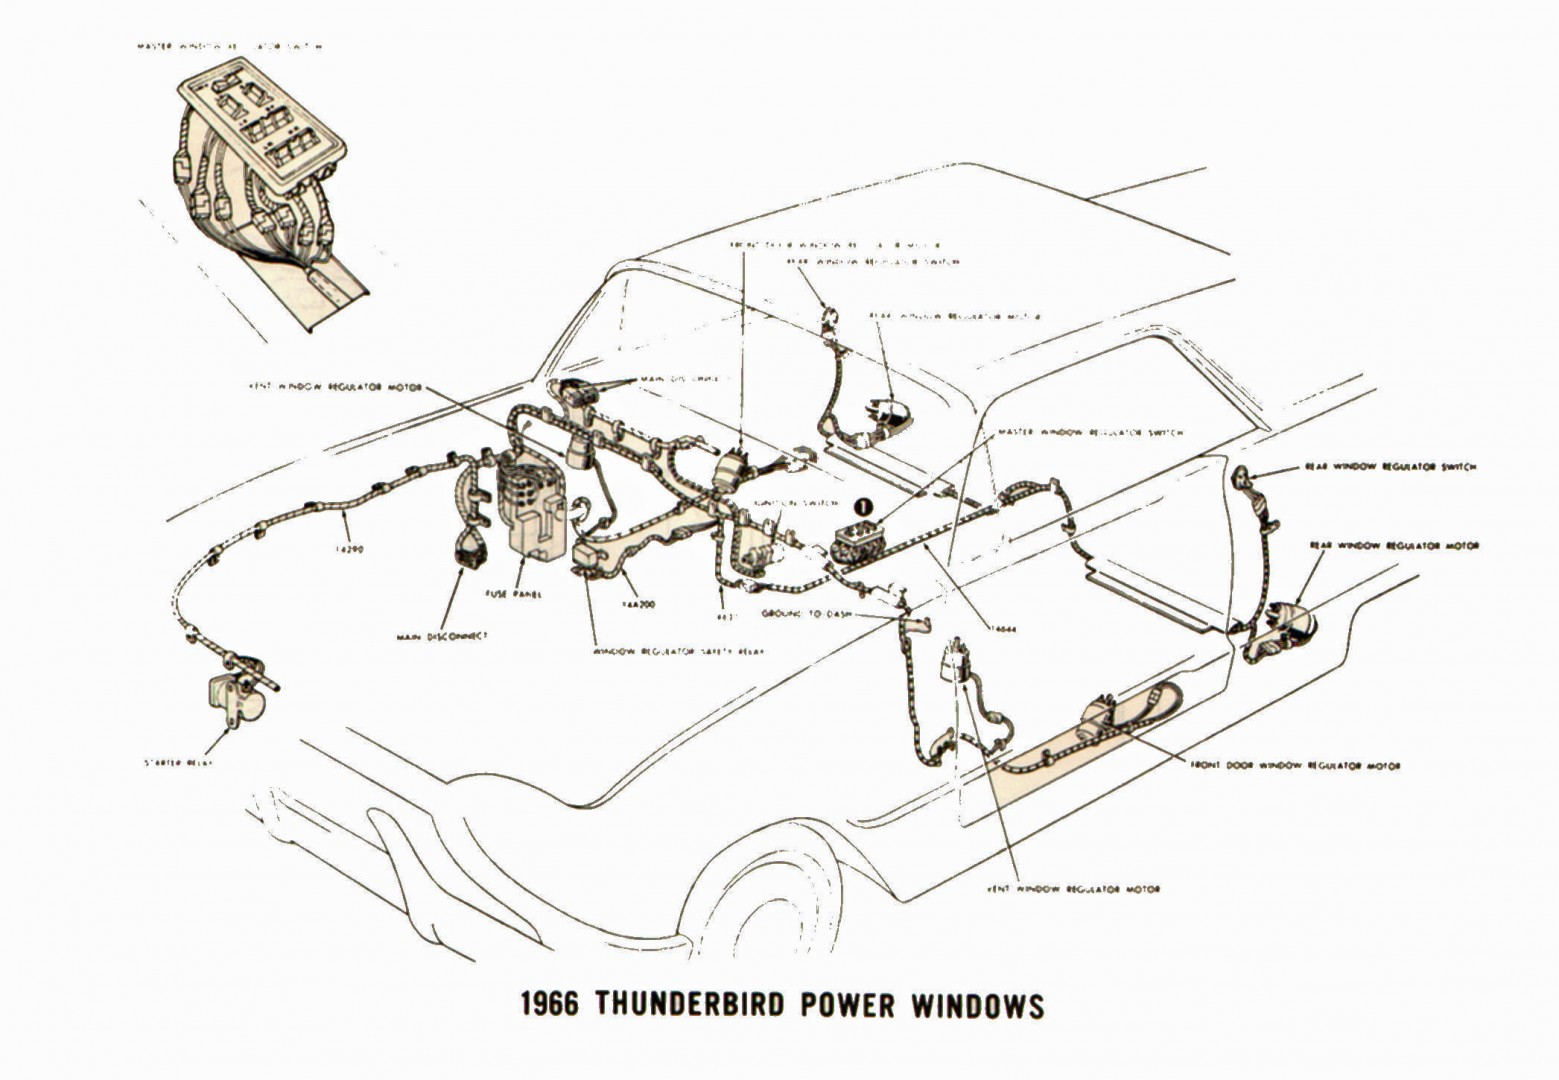 Ford Thunderbird Shop Manuals 1964 Chevy Truck Wiring Diagram Pdf 1966 Power Windows